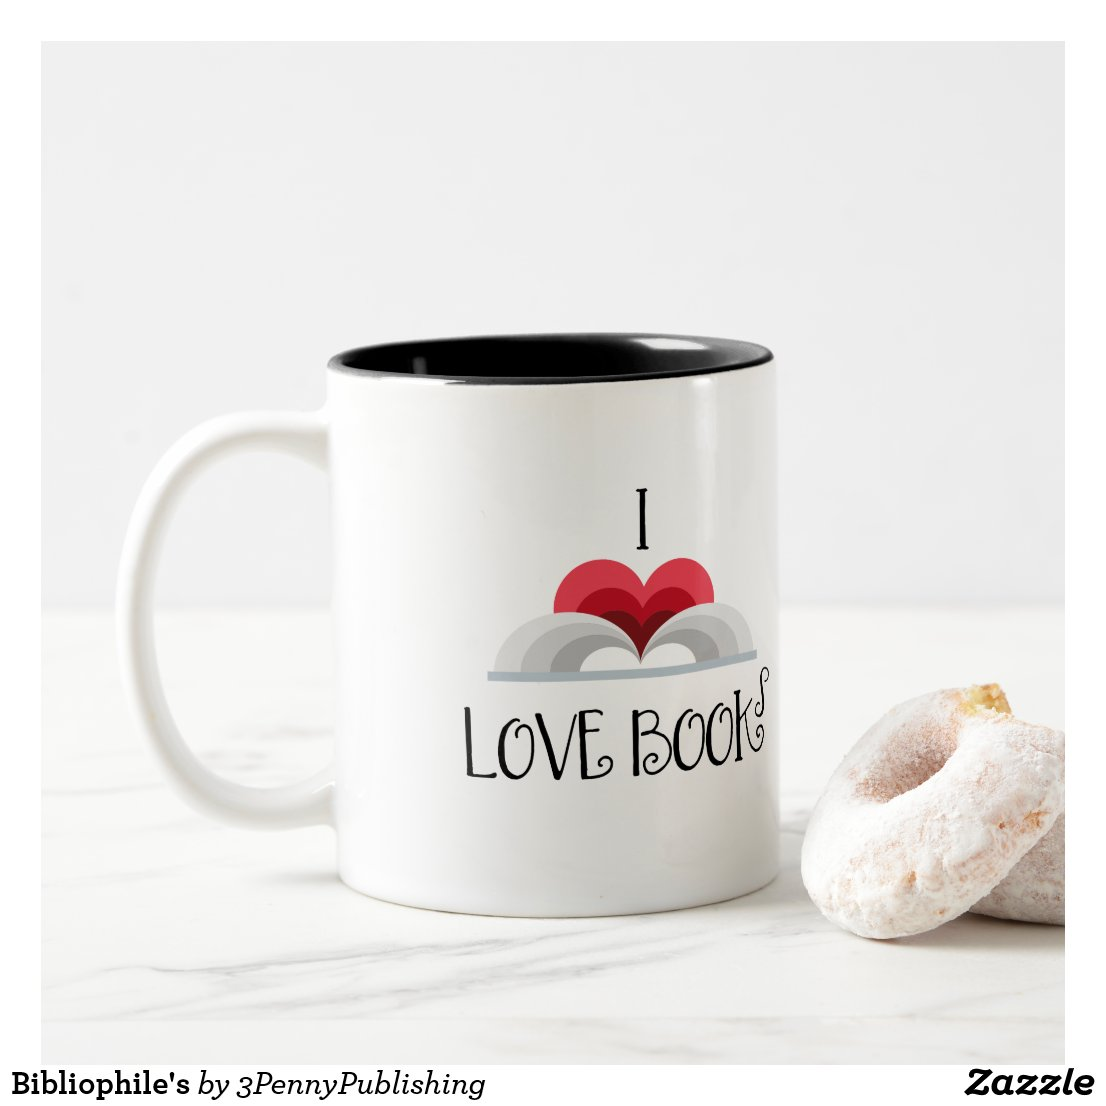 I Love Books (open book in heart shape) coffee mug gift for book lovers